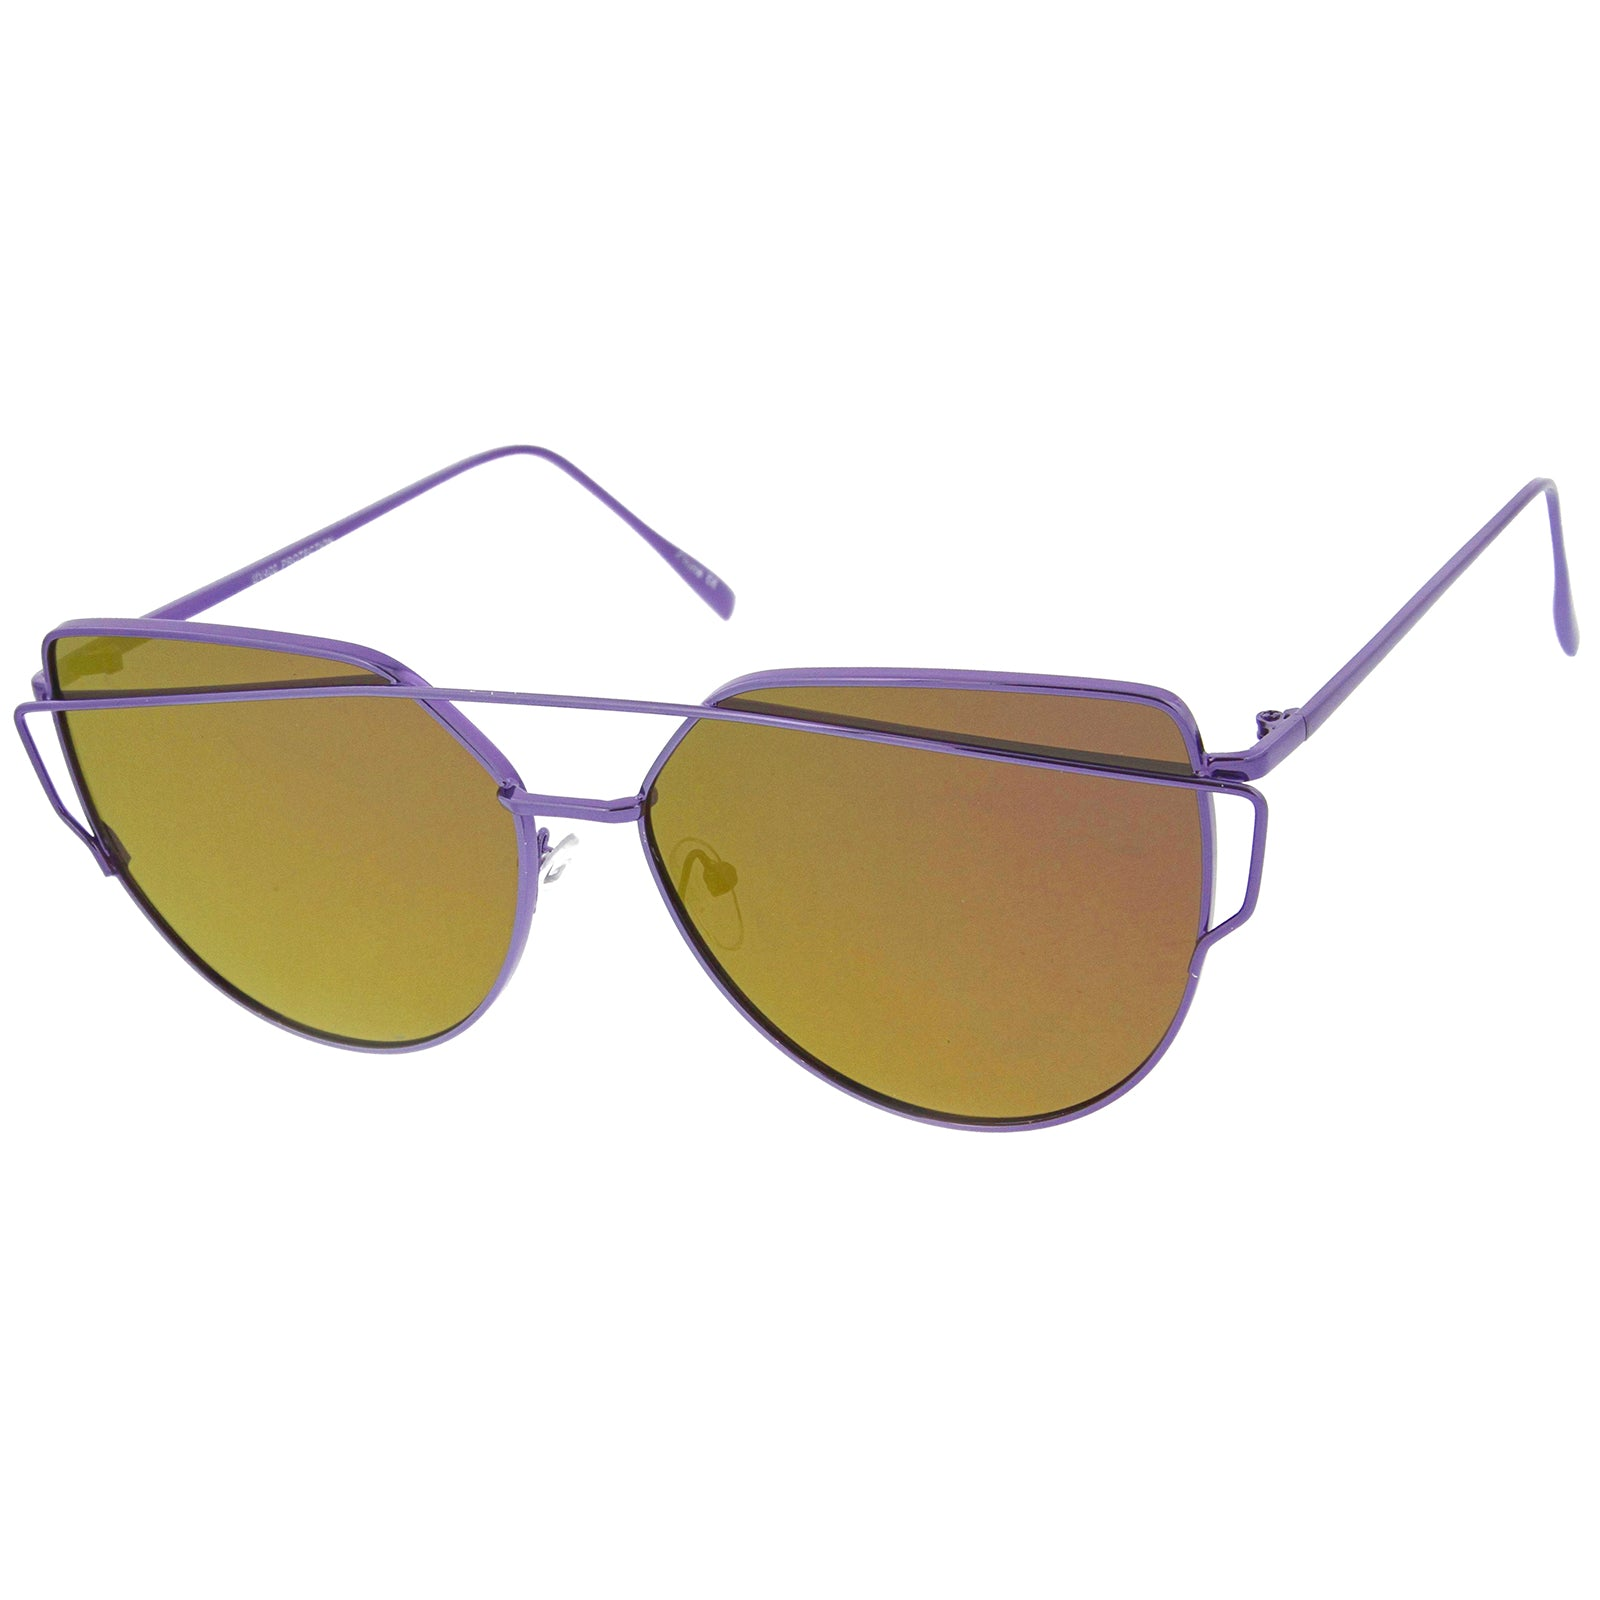 Oversize Metal Frame Thin Temple Color Mirror Flat Lens Aviator Sunglasses 62mm - sunglass.la - 14